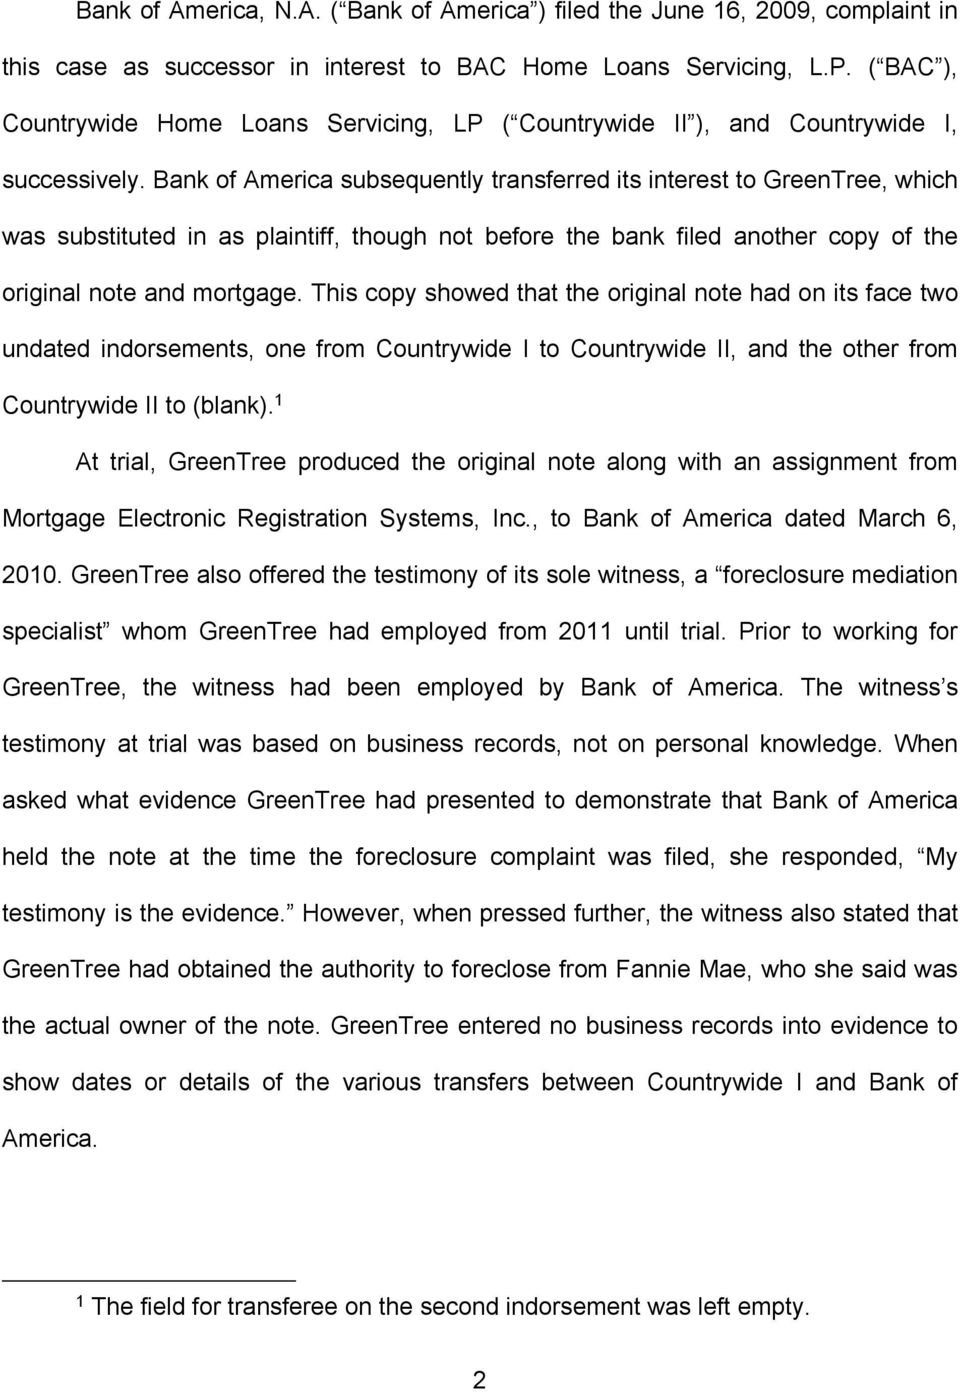 Bank of America subsequently transferred its interest to GreenTree, which was substituted in as plaintiff, though not before the bank filed another copy of the original note and mortgage.